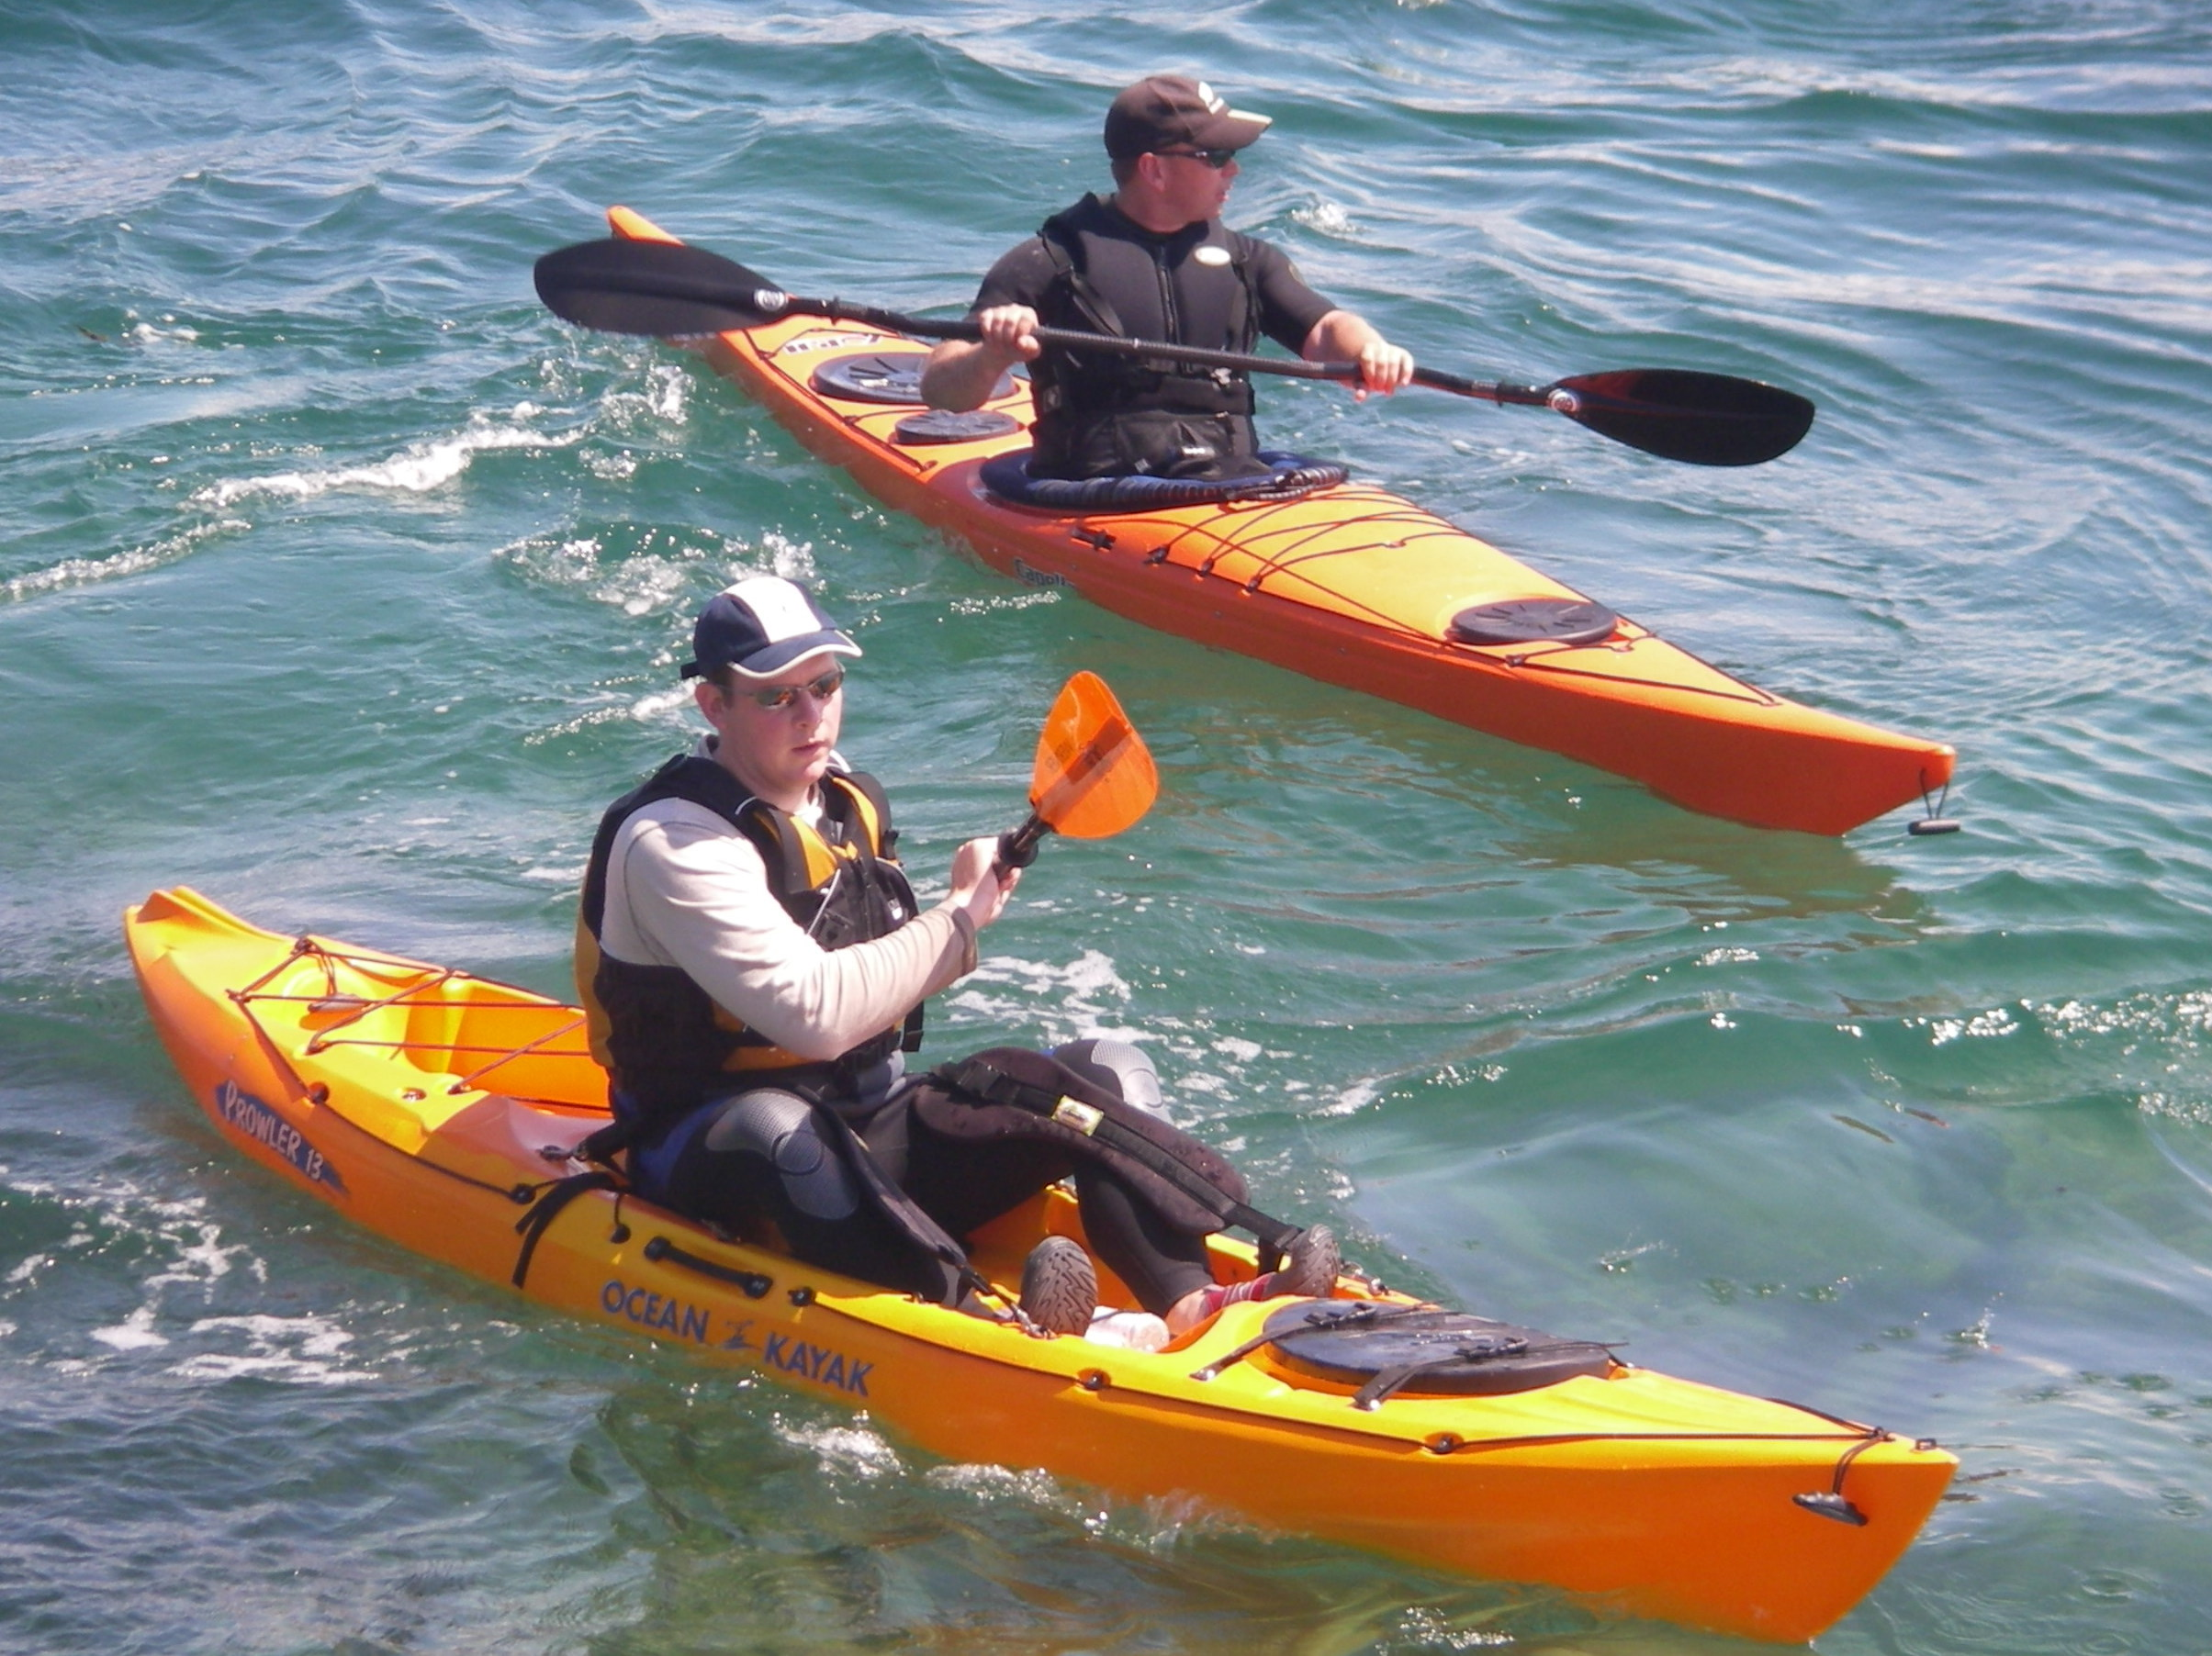 Kayak Sport Competition 177.31 Kb